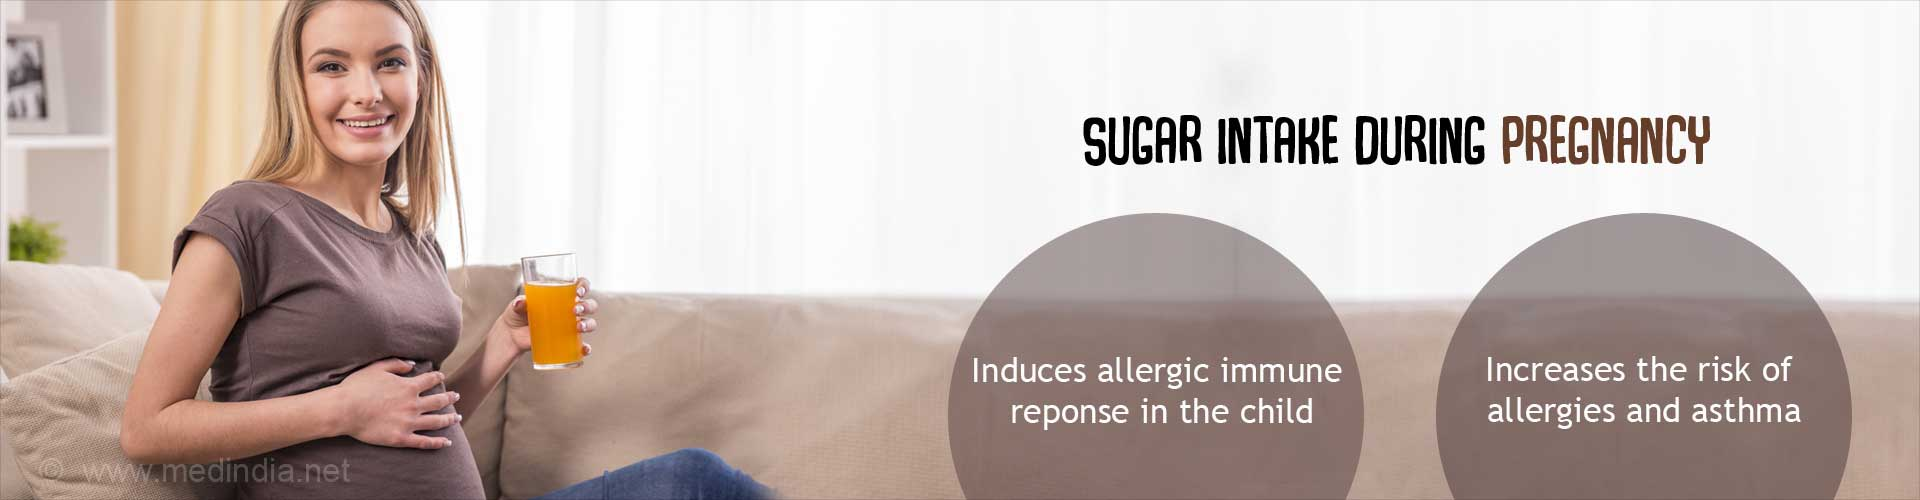 Sugar Intake During Pregnancy - Induces allergic immune response in the child - Increases the risk of allergies and asthma